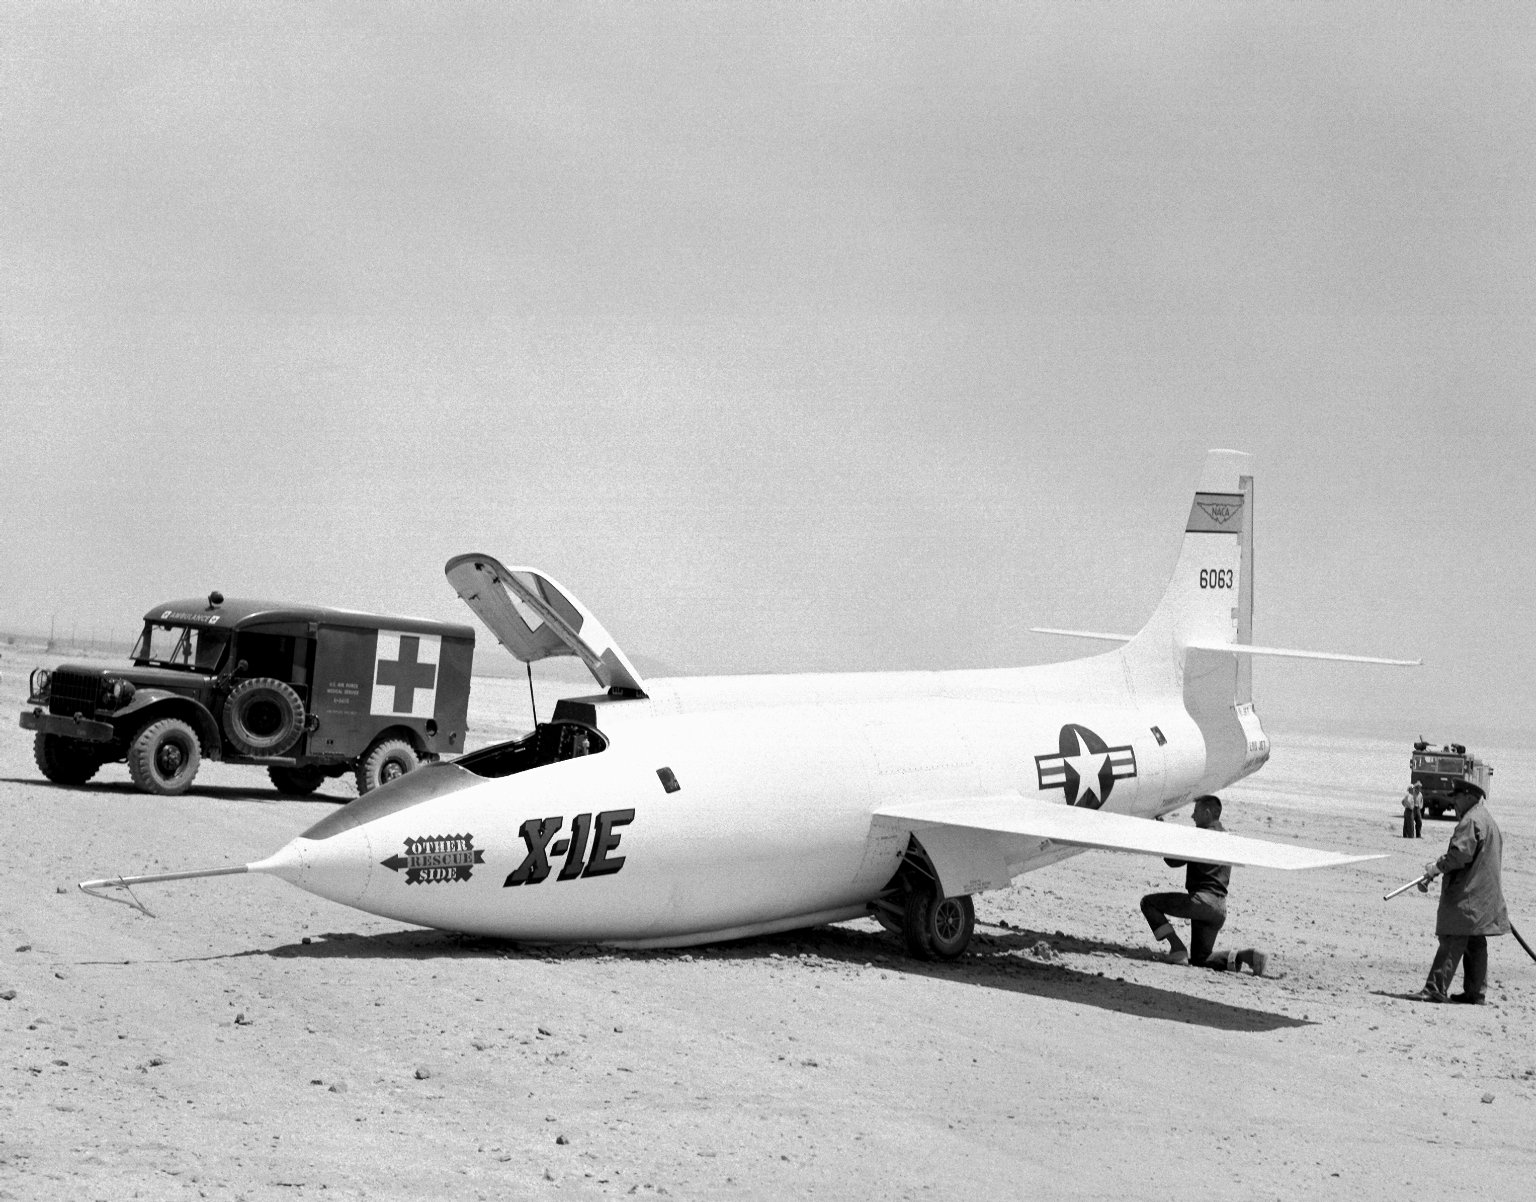 X-1E On Rogers Dry Lake With Collapsed Nose Gear